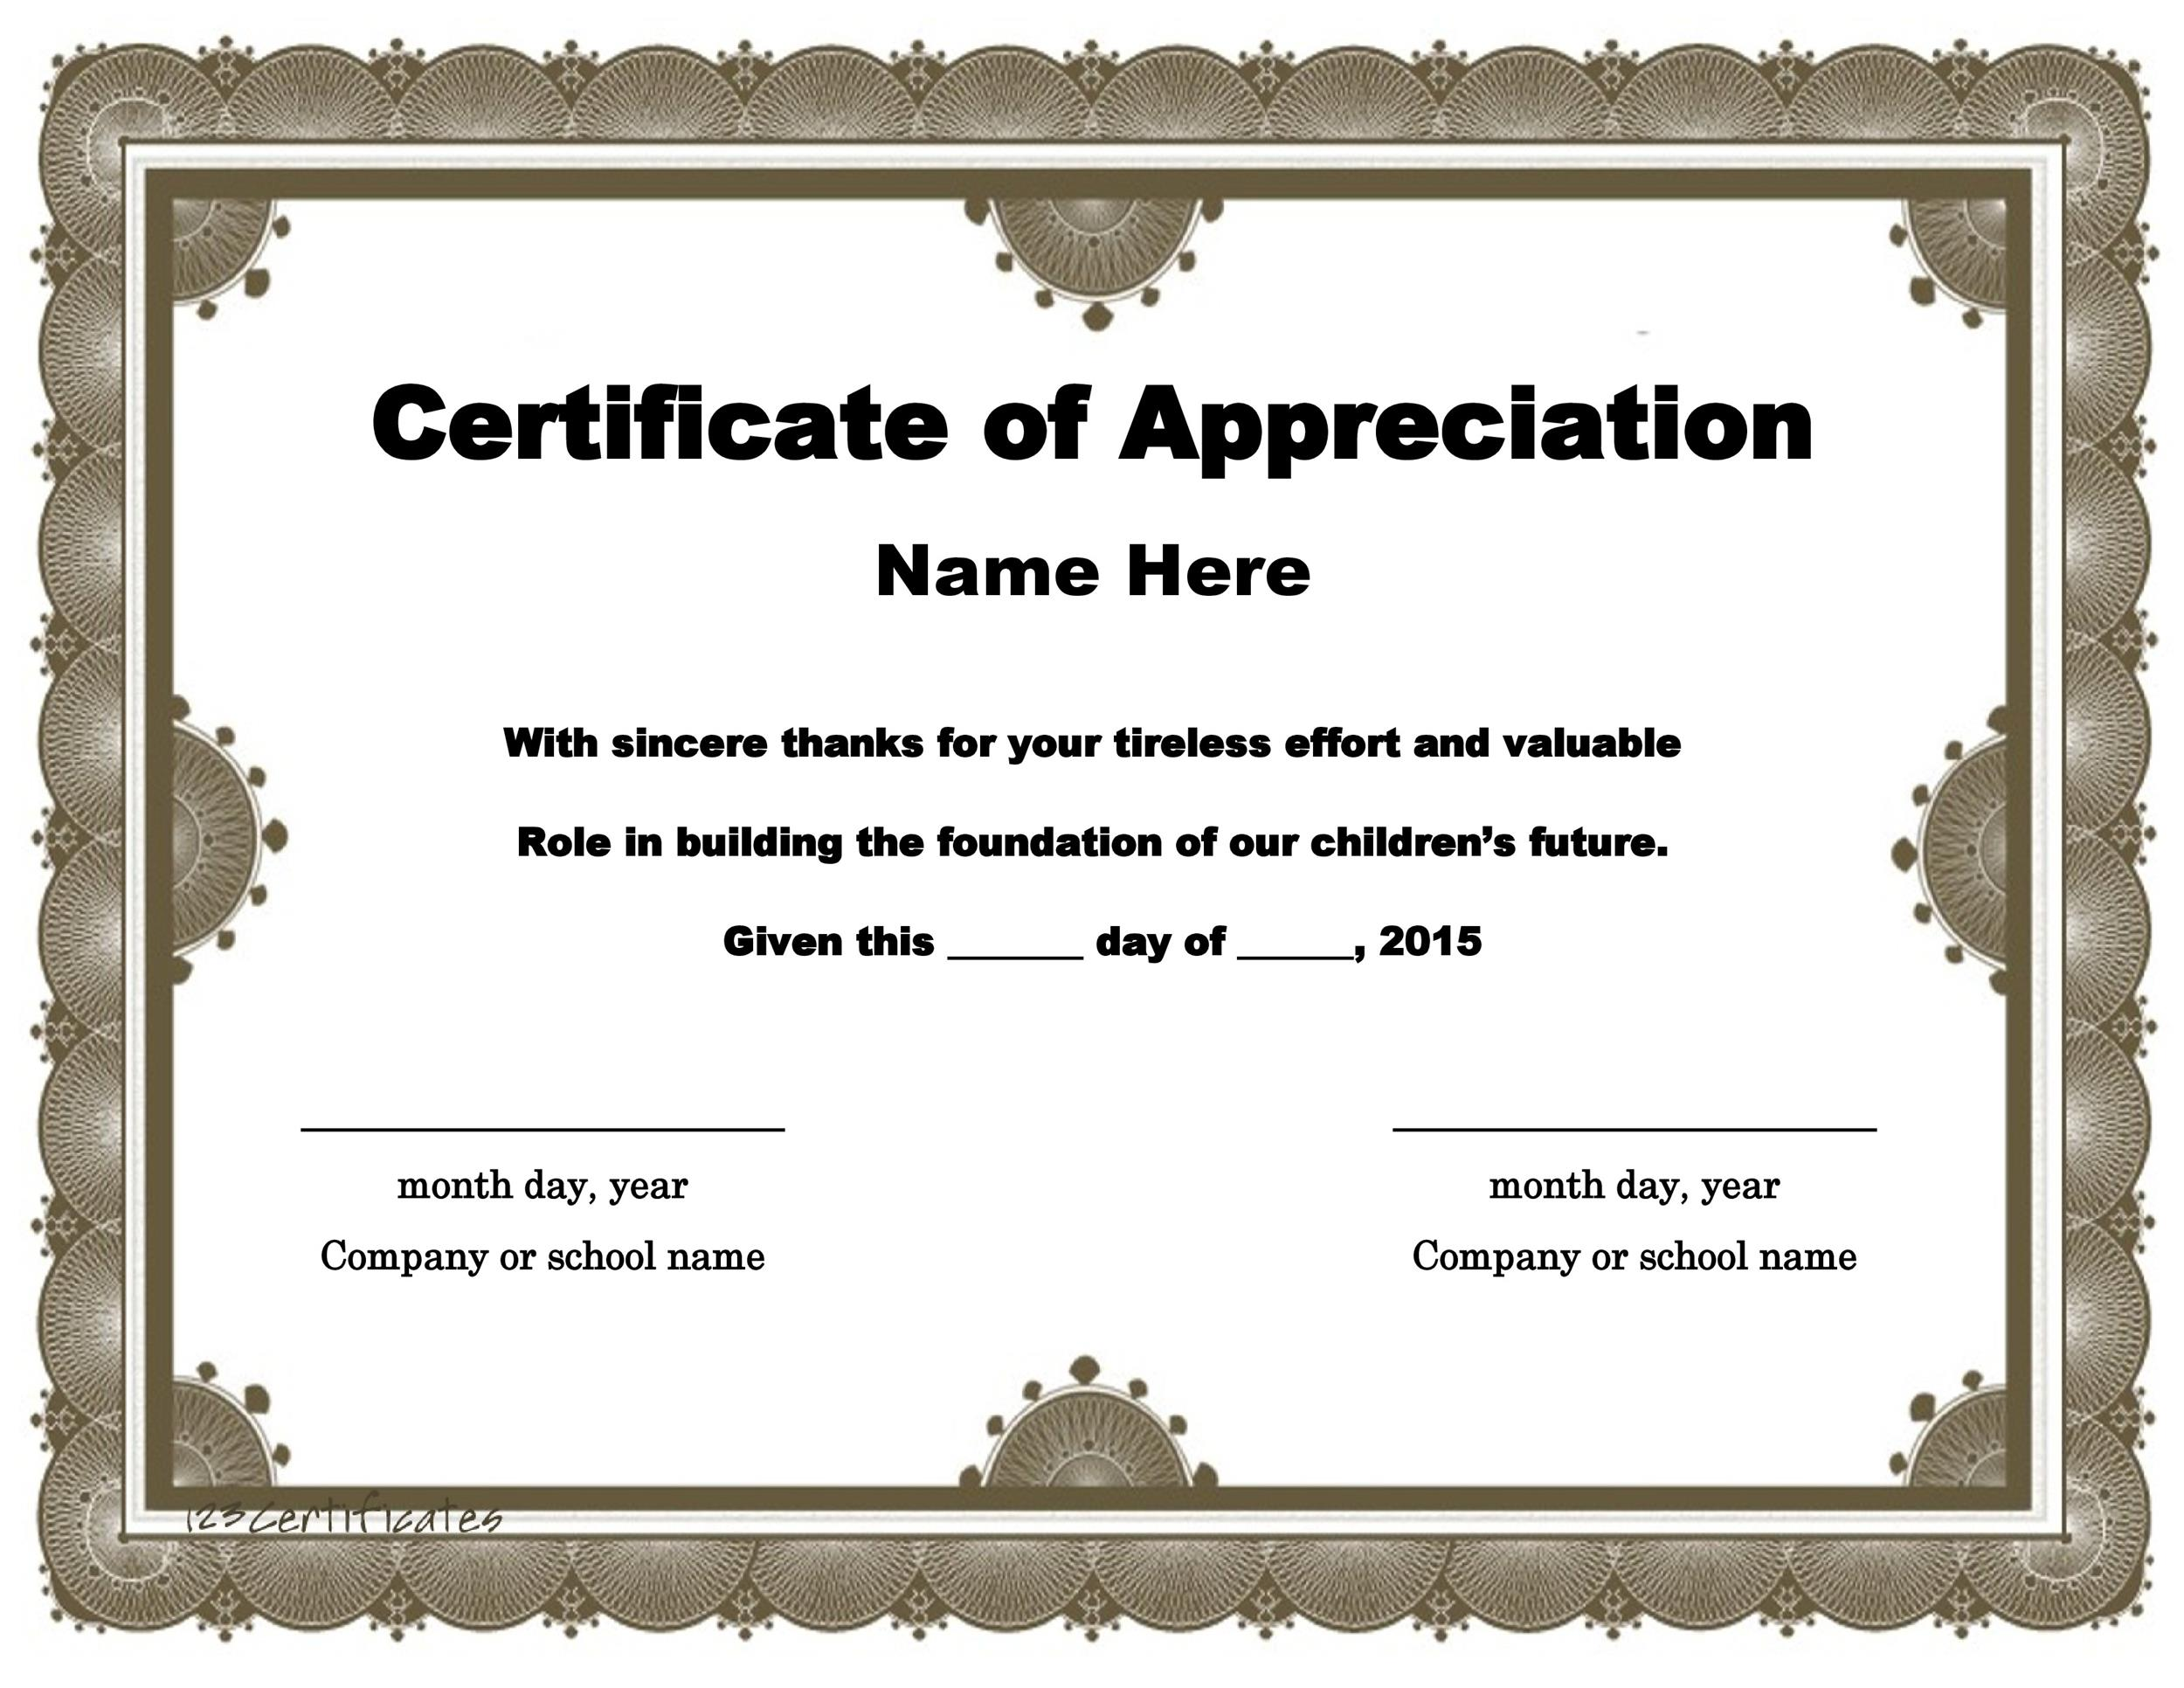 30 free certificate of appreciation templates and letters printable certificate of appreciation 03 yadclub